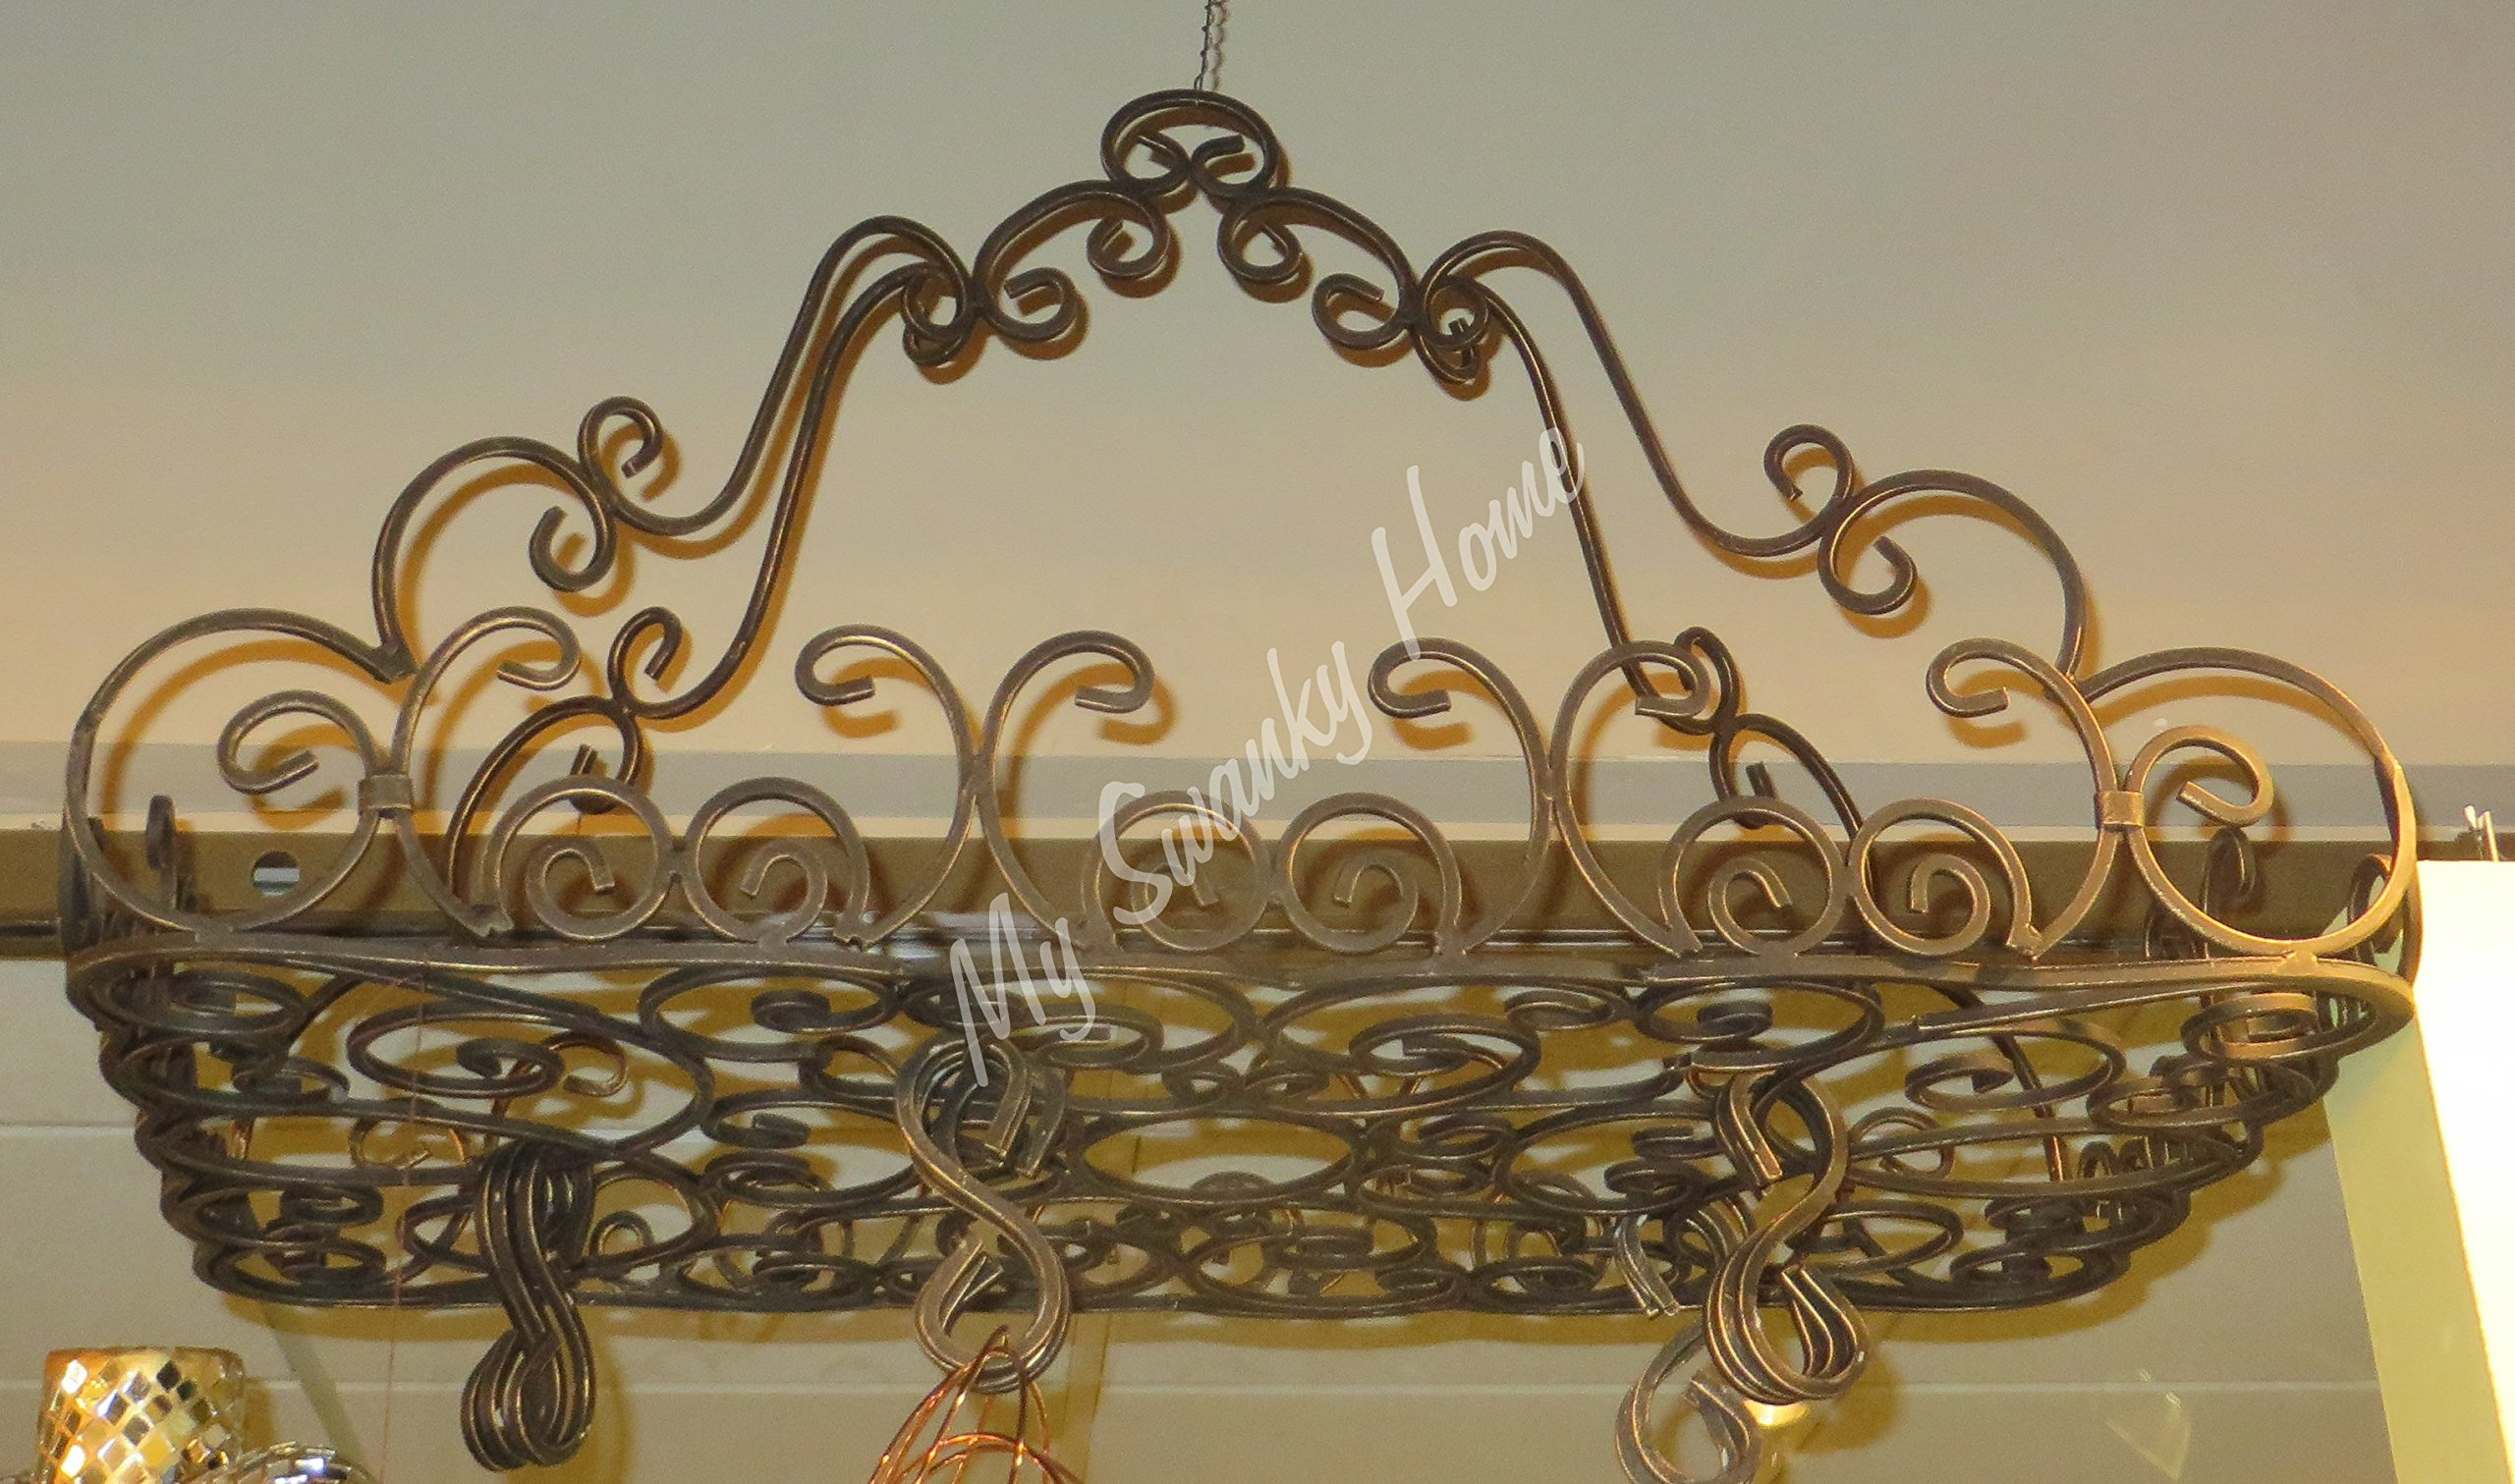 Ornate Wrought Iron French Scroll Pot Rack | Hanging Pan Ceiling Gothic